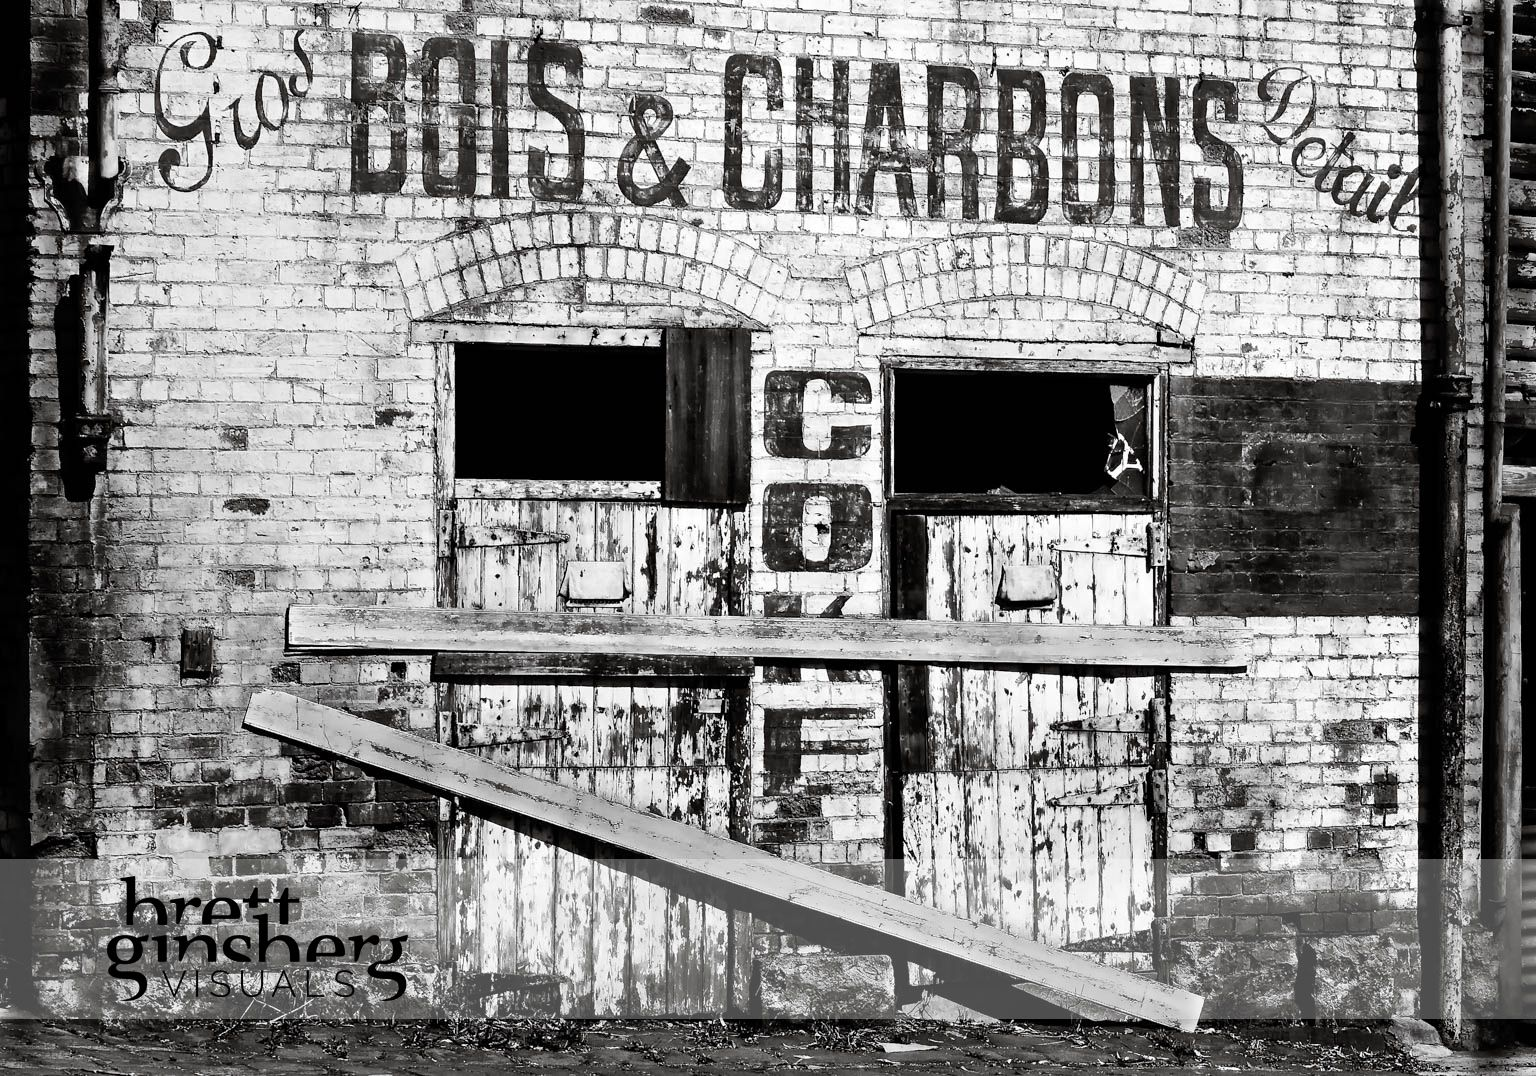 Bois & Charbons building next to The Abbotsford Convent Melbourne, Australia